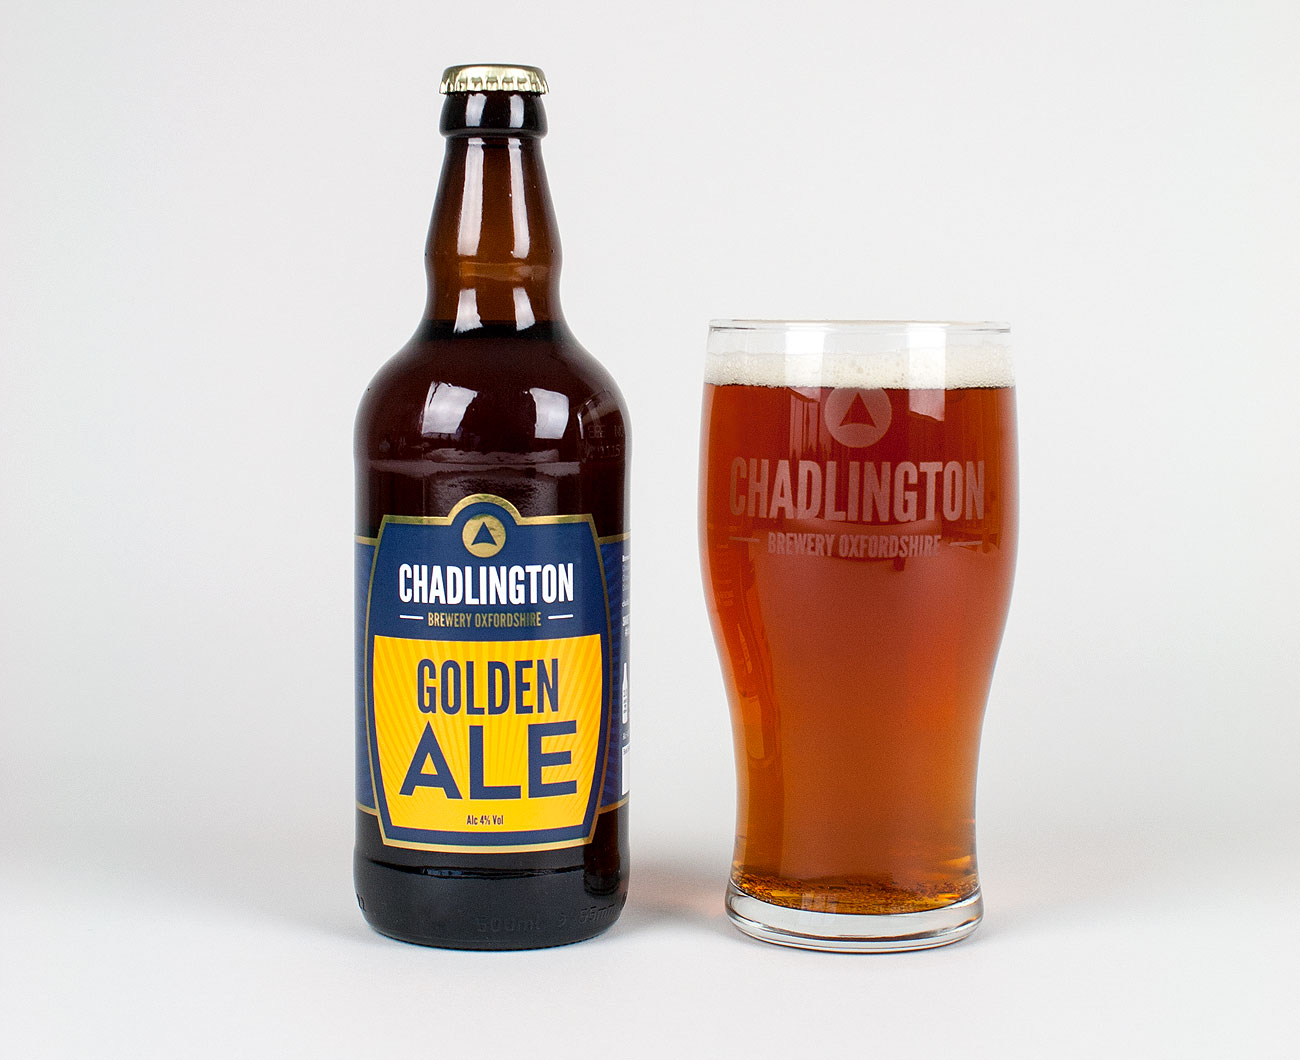 Golden Ale bottle label design